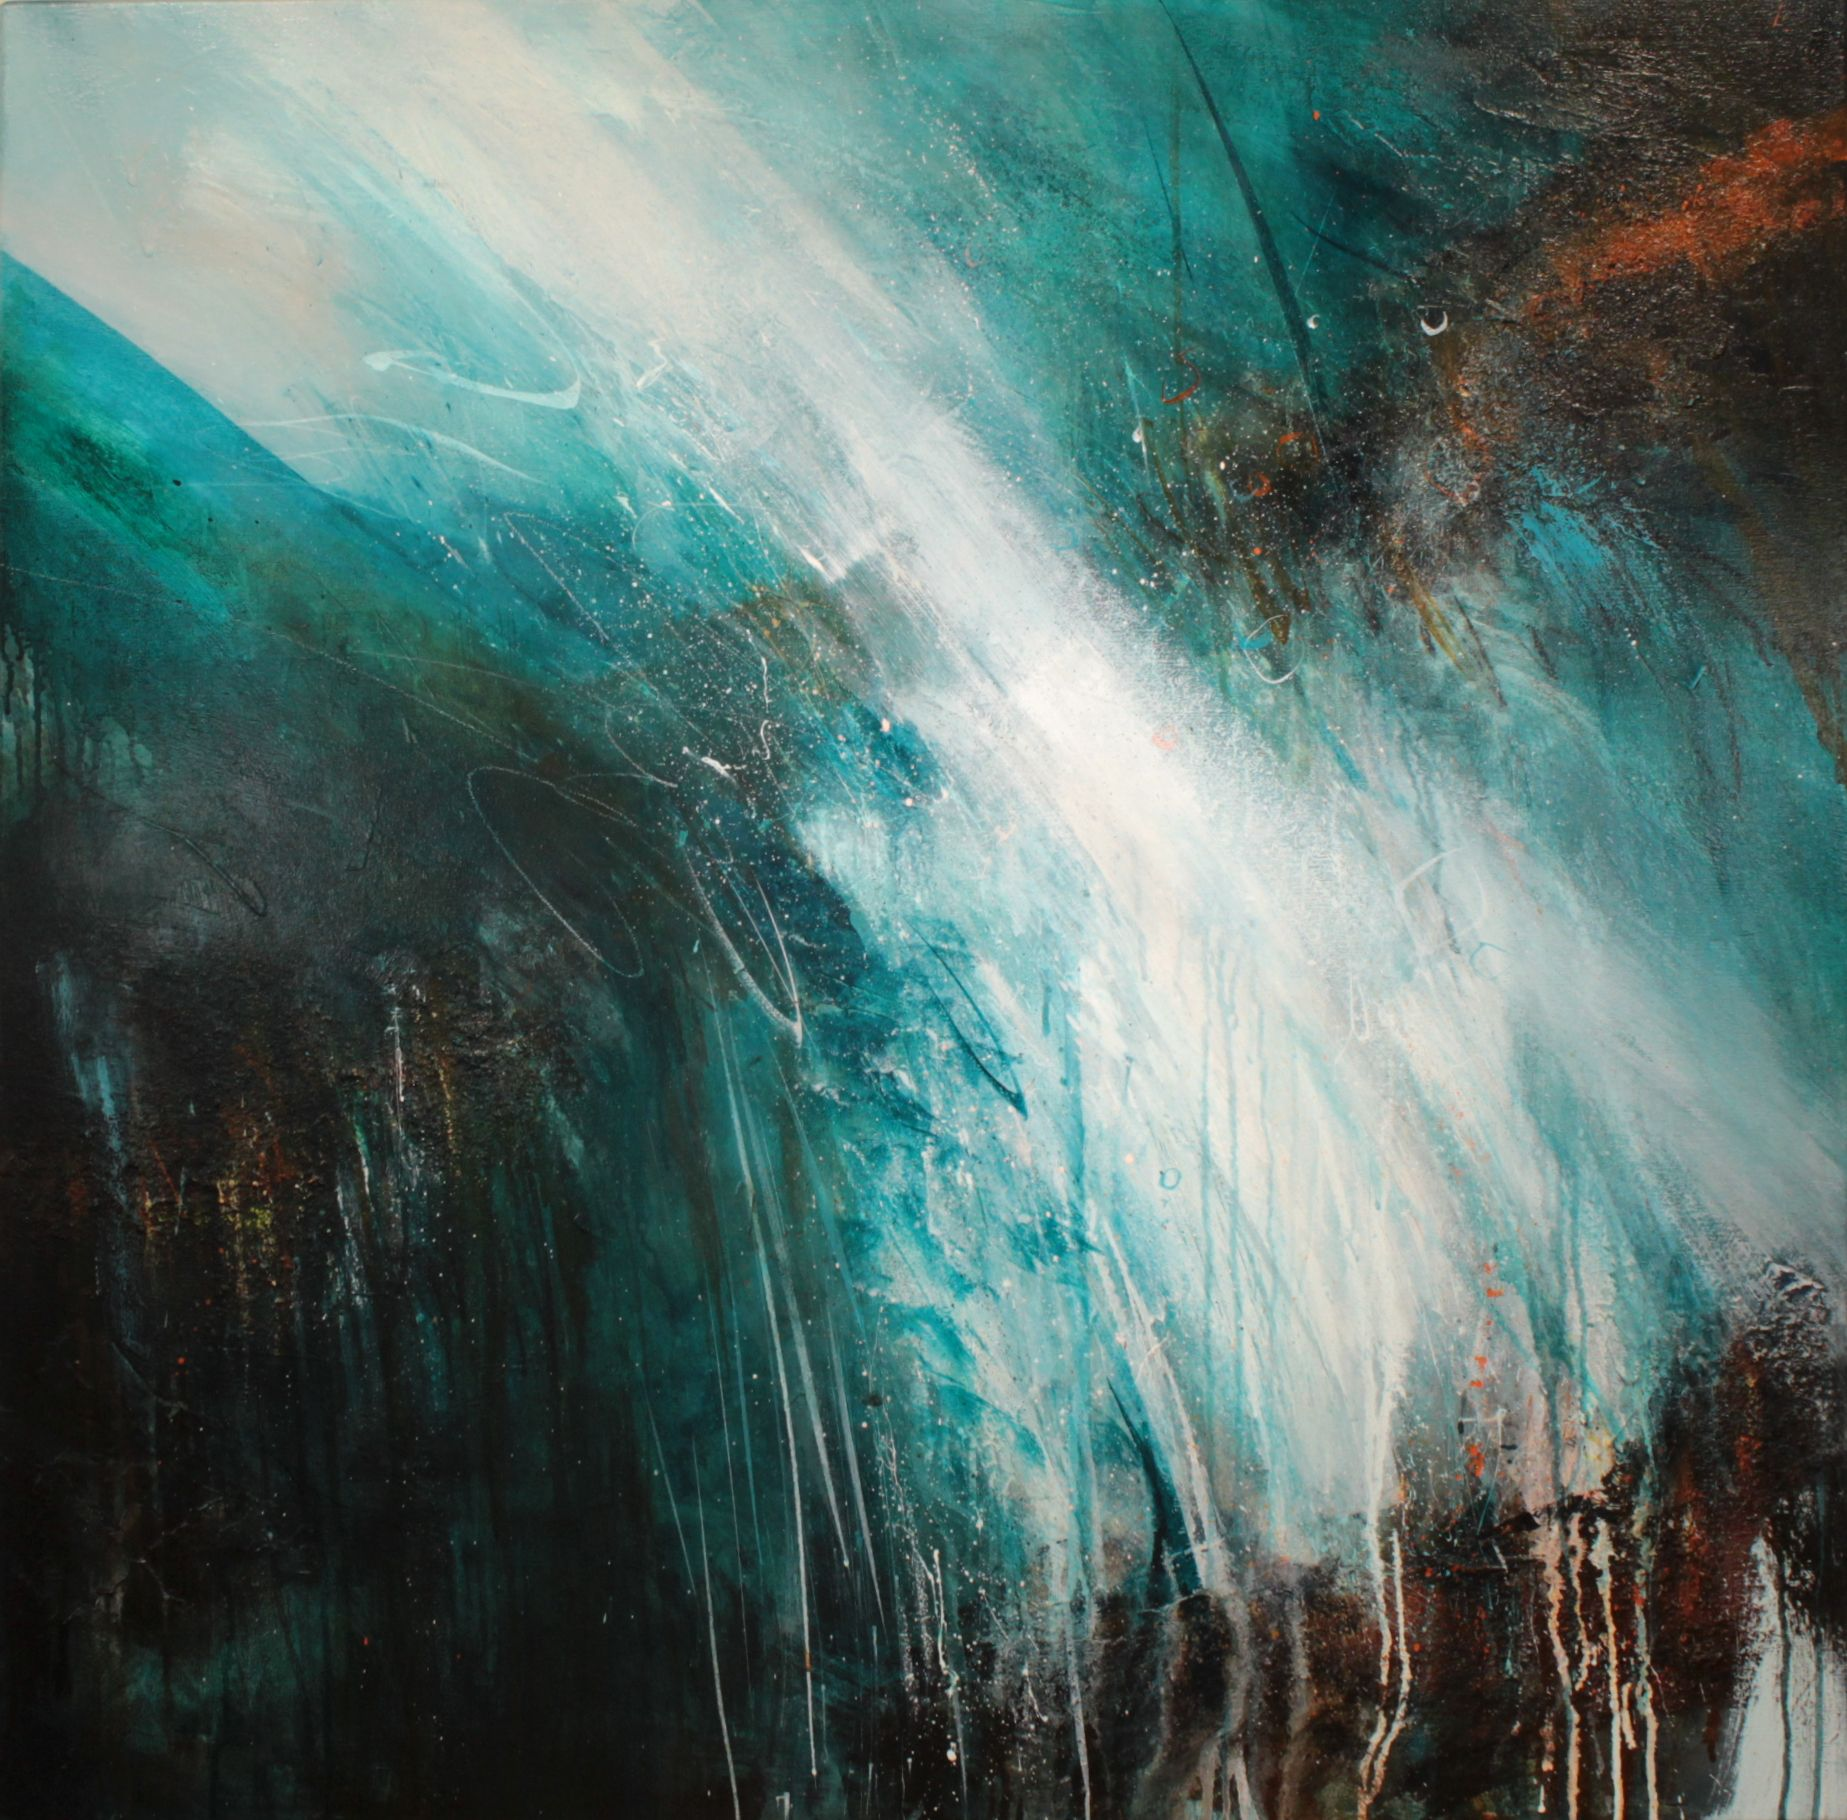 abstract painting with strong diagonal in turquoise and white with rusted rock areas